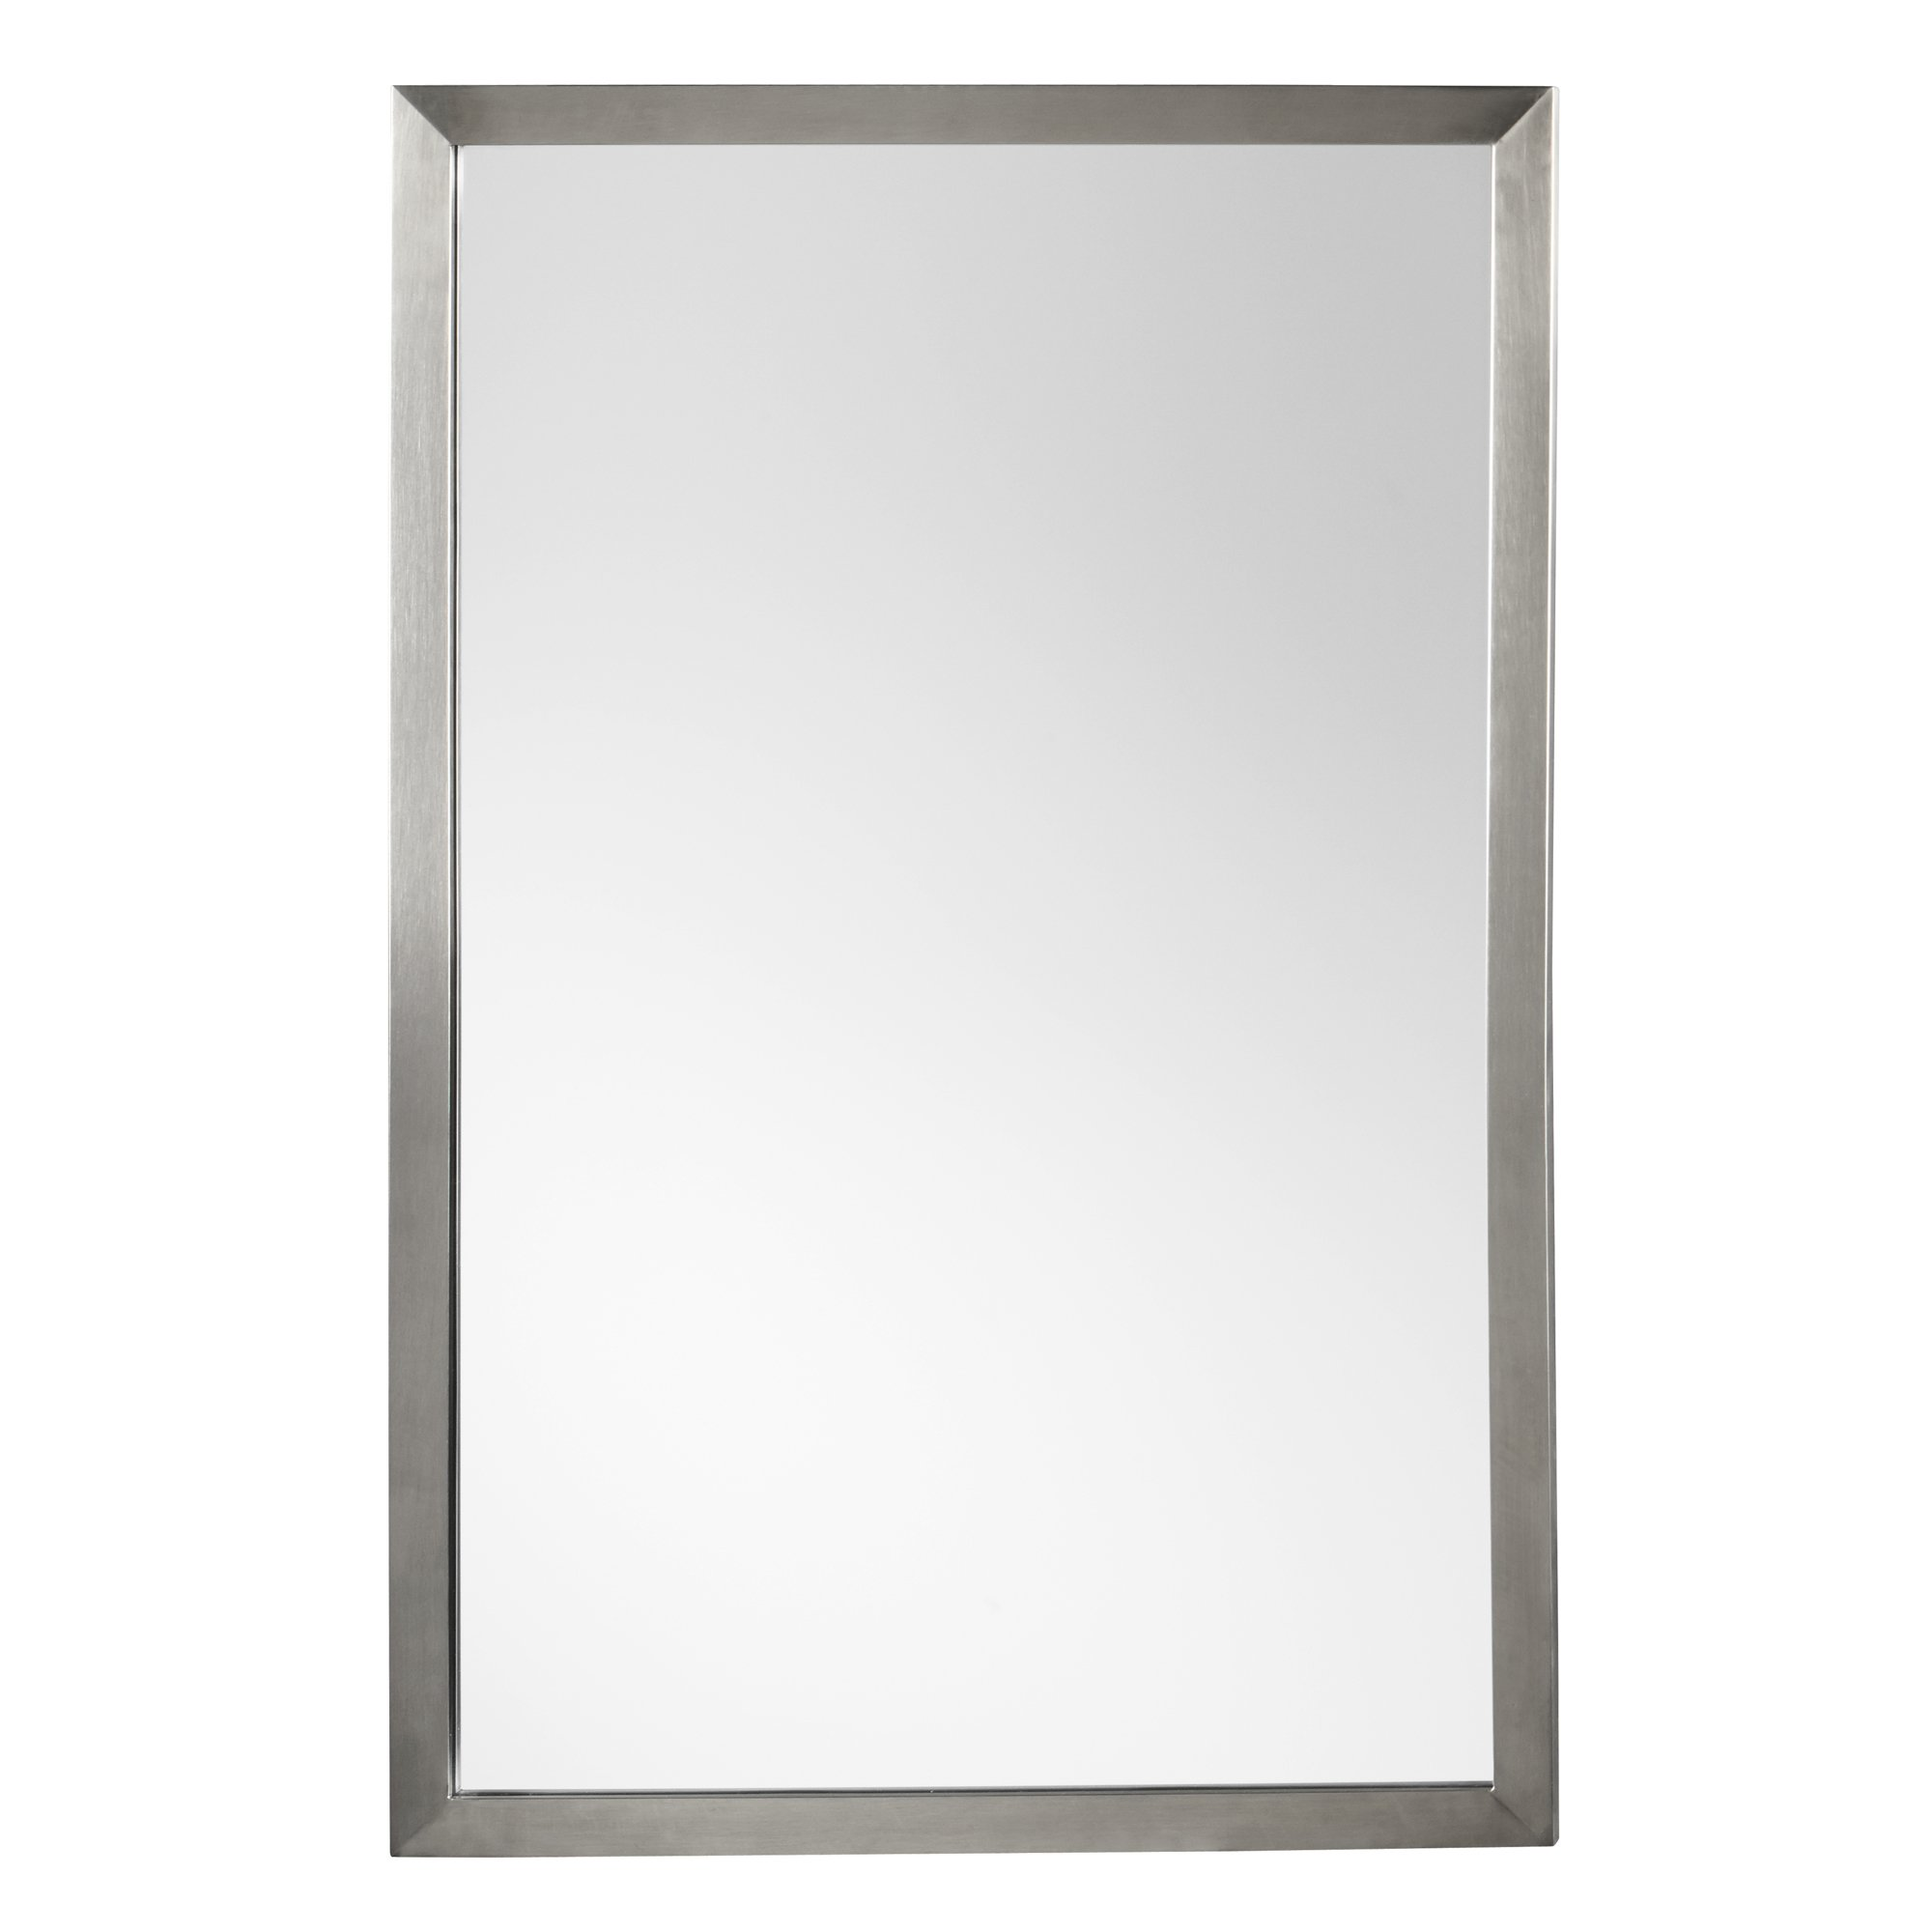 RONBOW Emile 22'' x 32'' Contemporary Metal Frame Wall Decor Bathroom Mirror in Brushed Nickel Finish 603423-BN by Ronbow